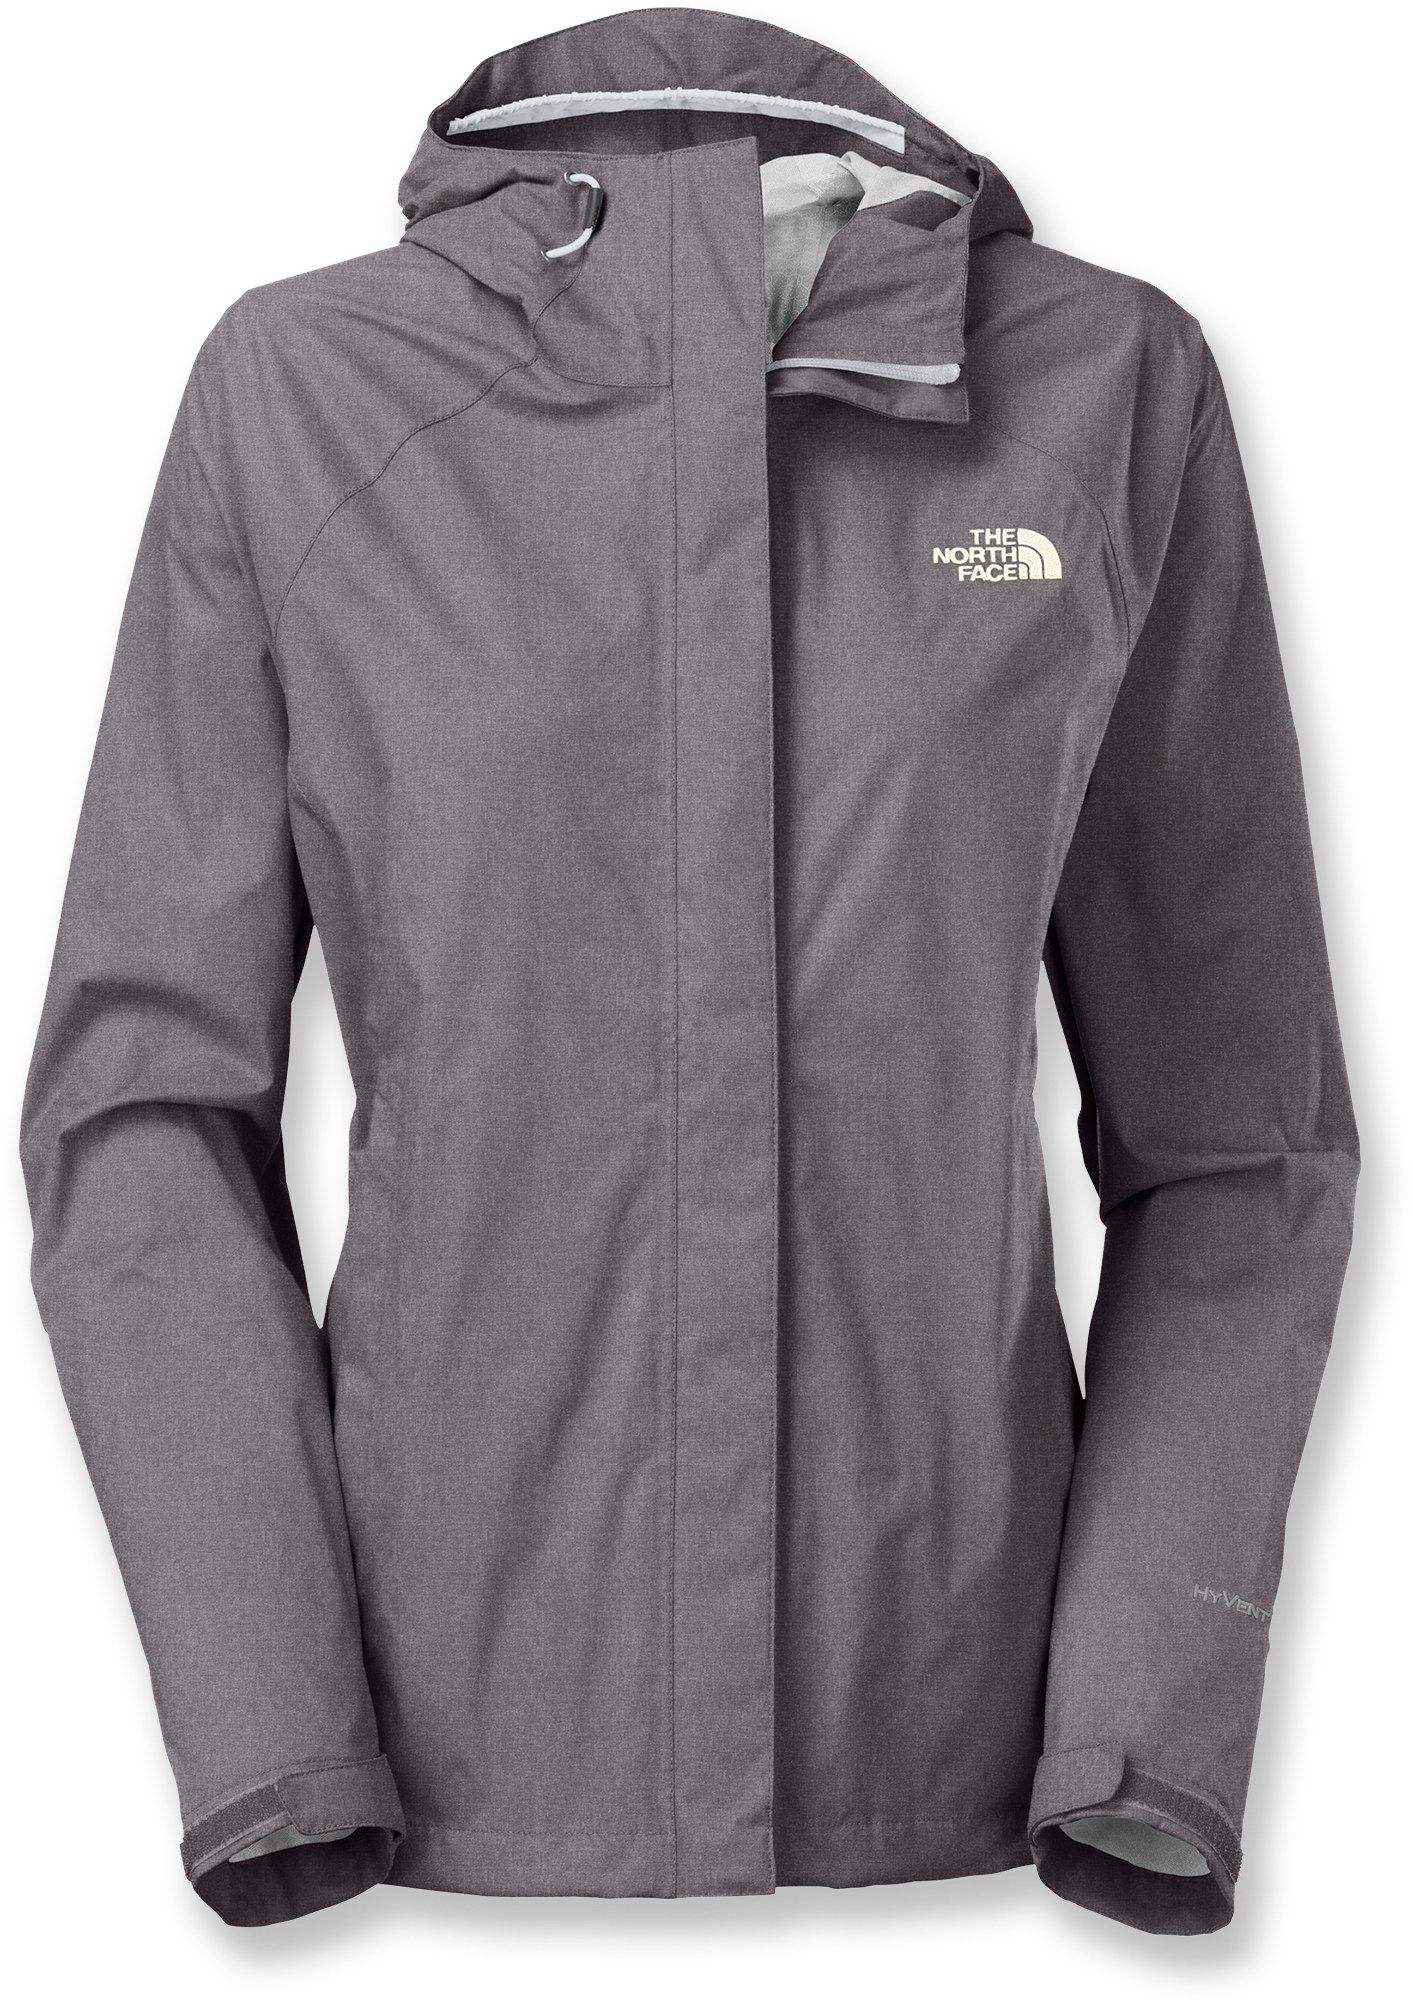 The North Face Women's Venture Rain Jacket Rabbit Grey Heather M ...